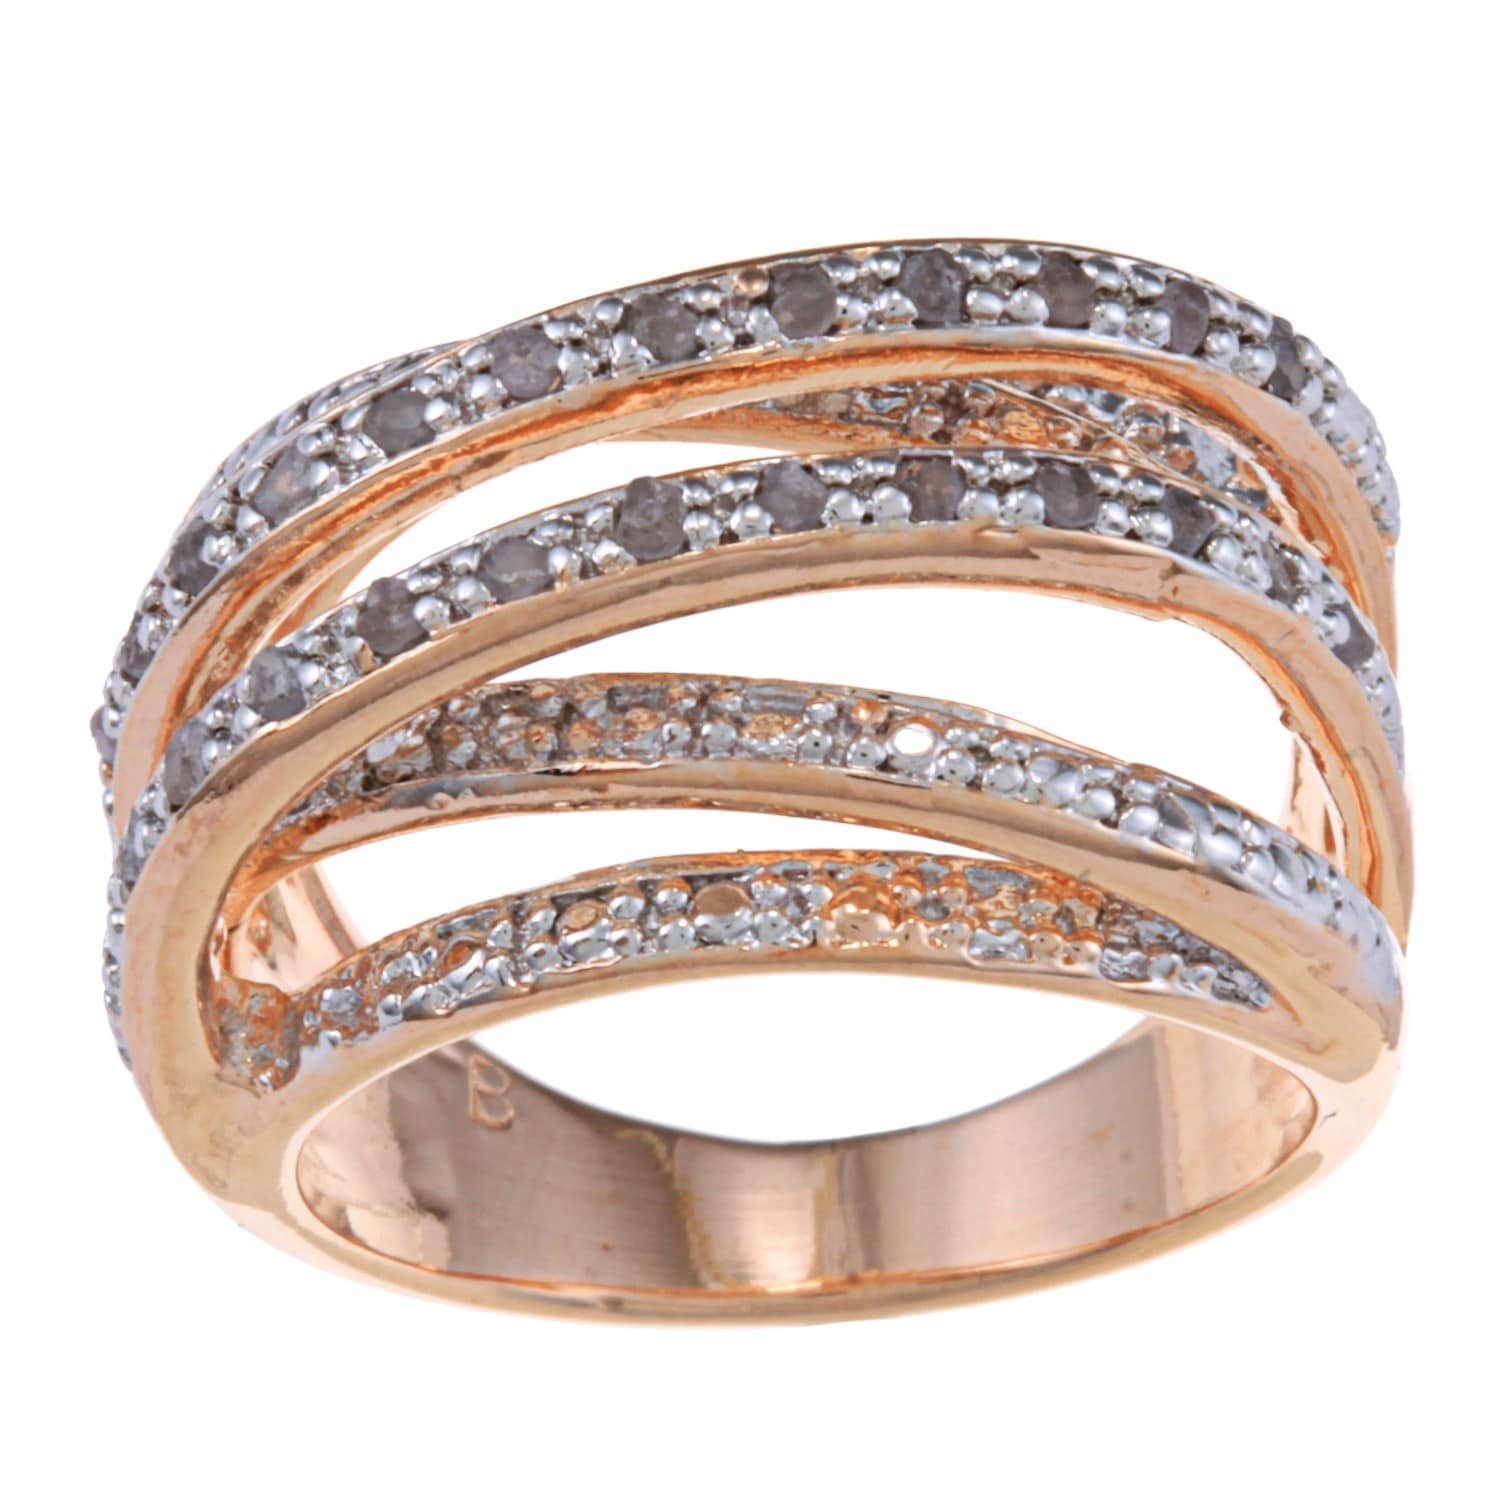 trends new plumb parekh club continue who cluster york says top styles rings laxmi multi in as to ring it nick bands big when diamond for almost bridal comes the cites designs looks